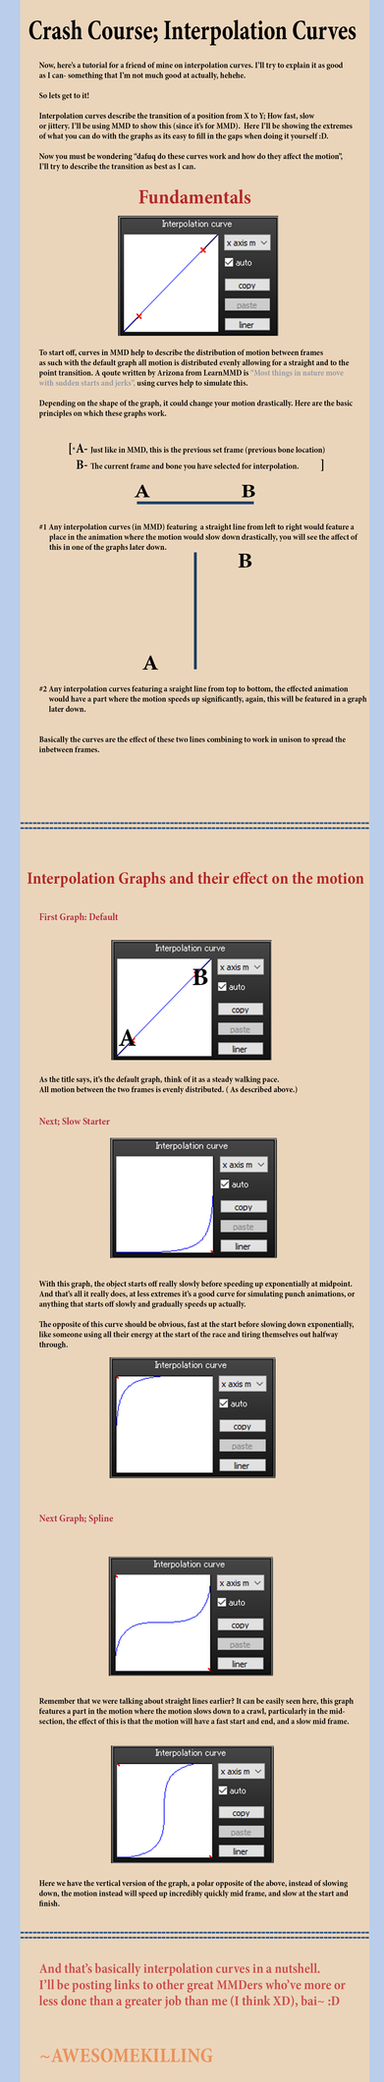 Crash Course: Interpolation Curves by AWESOMEKILLING